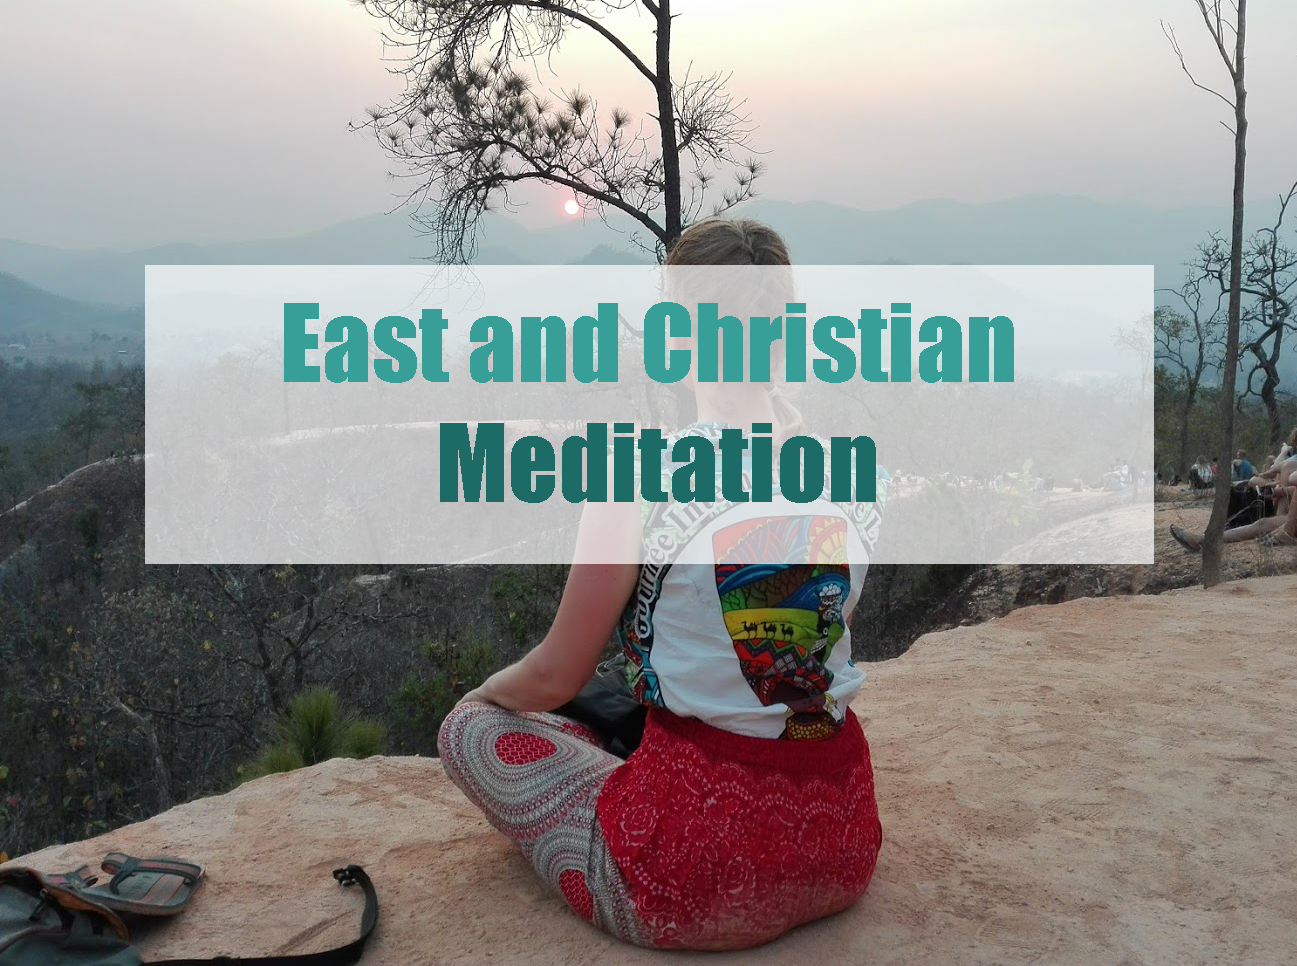 East and Christian meditation